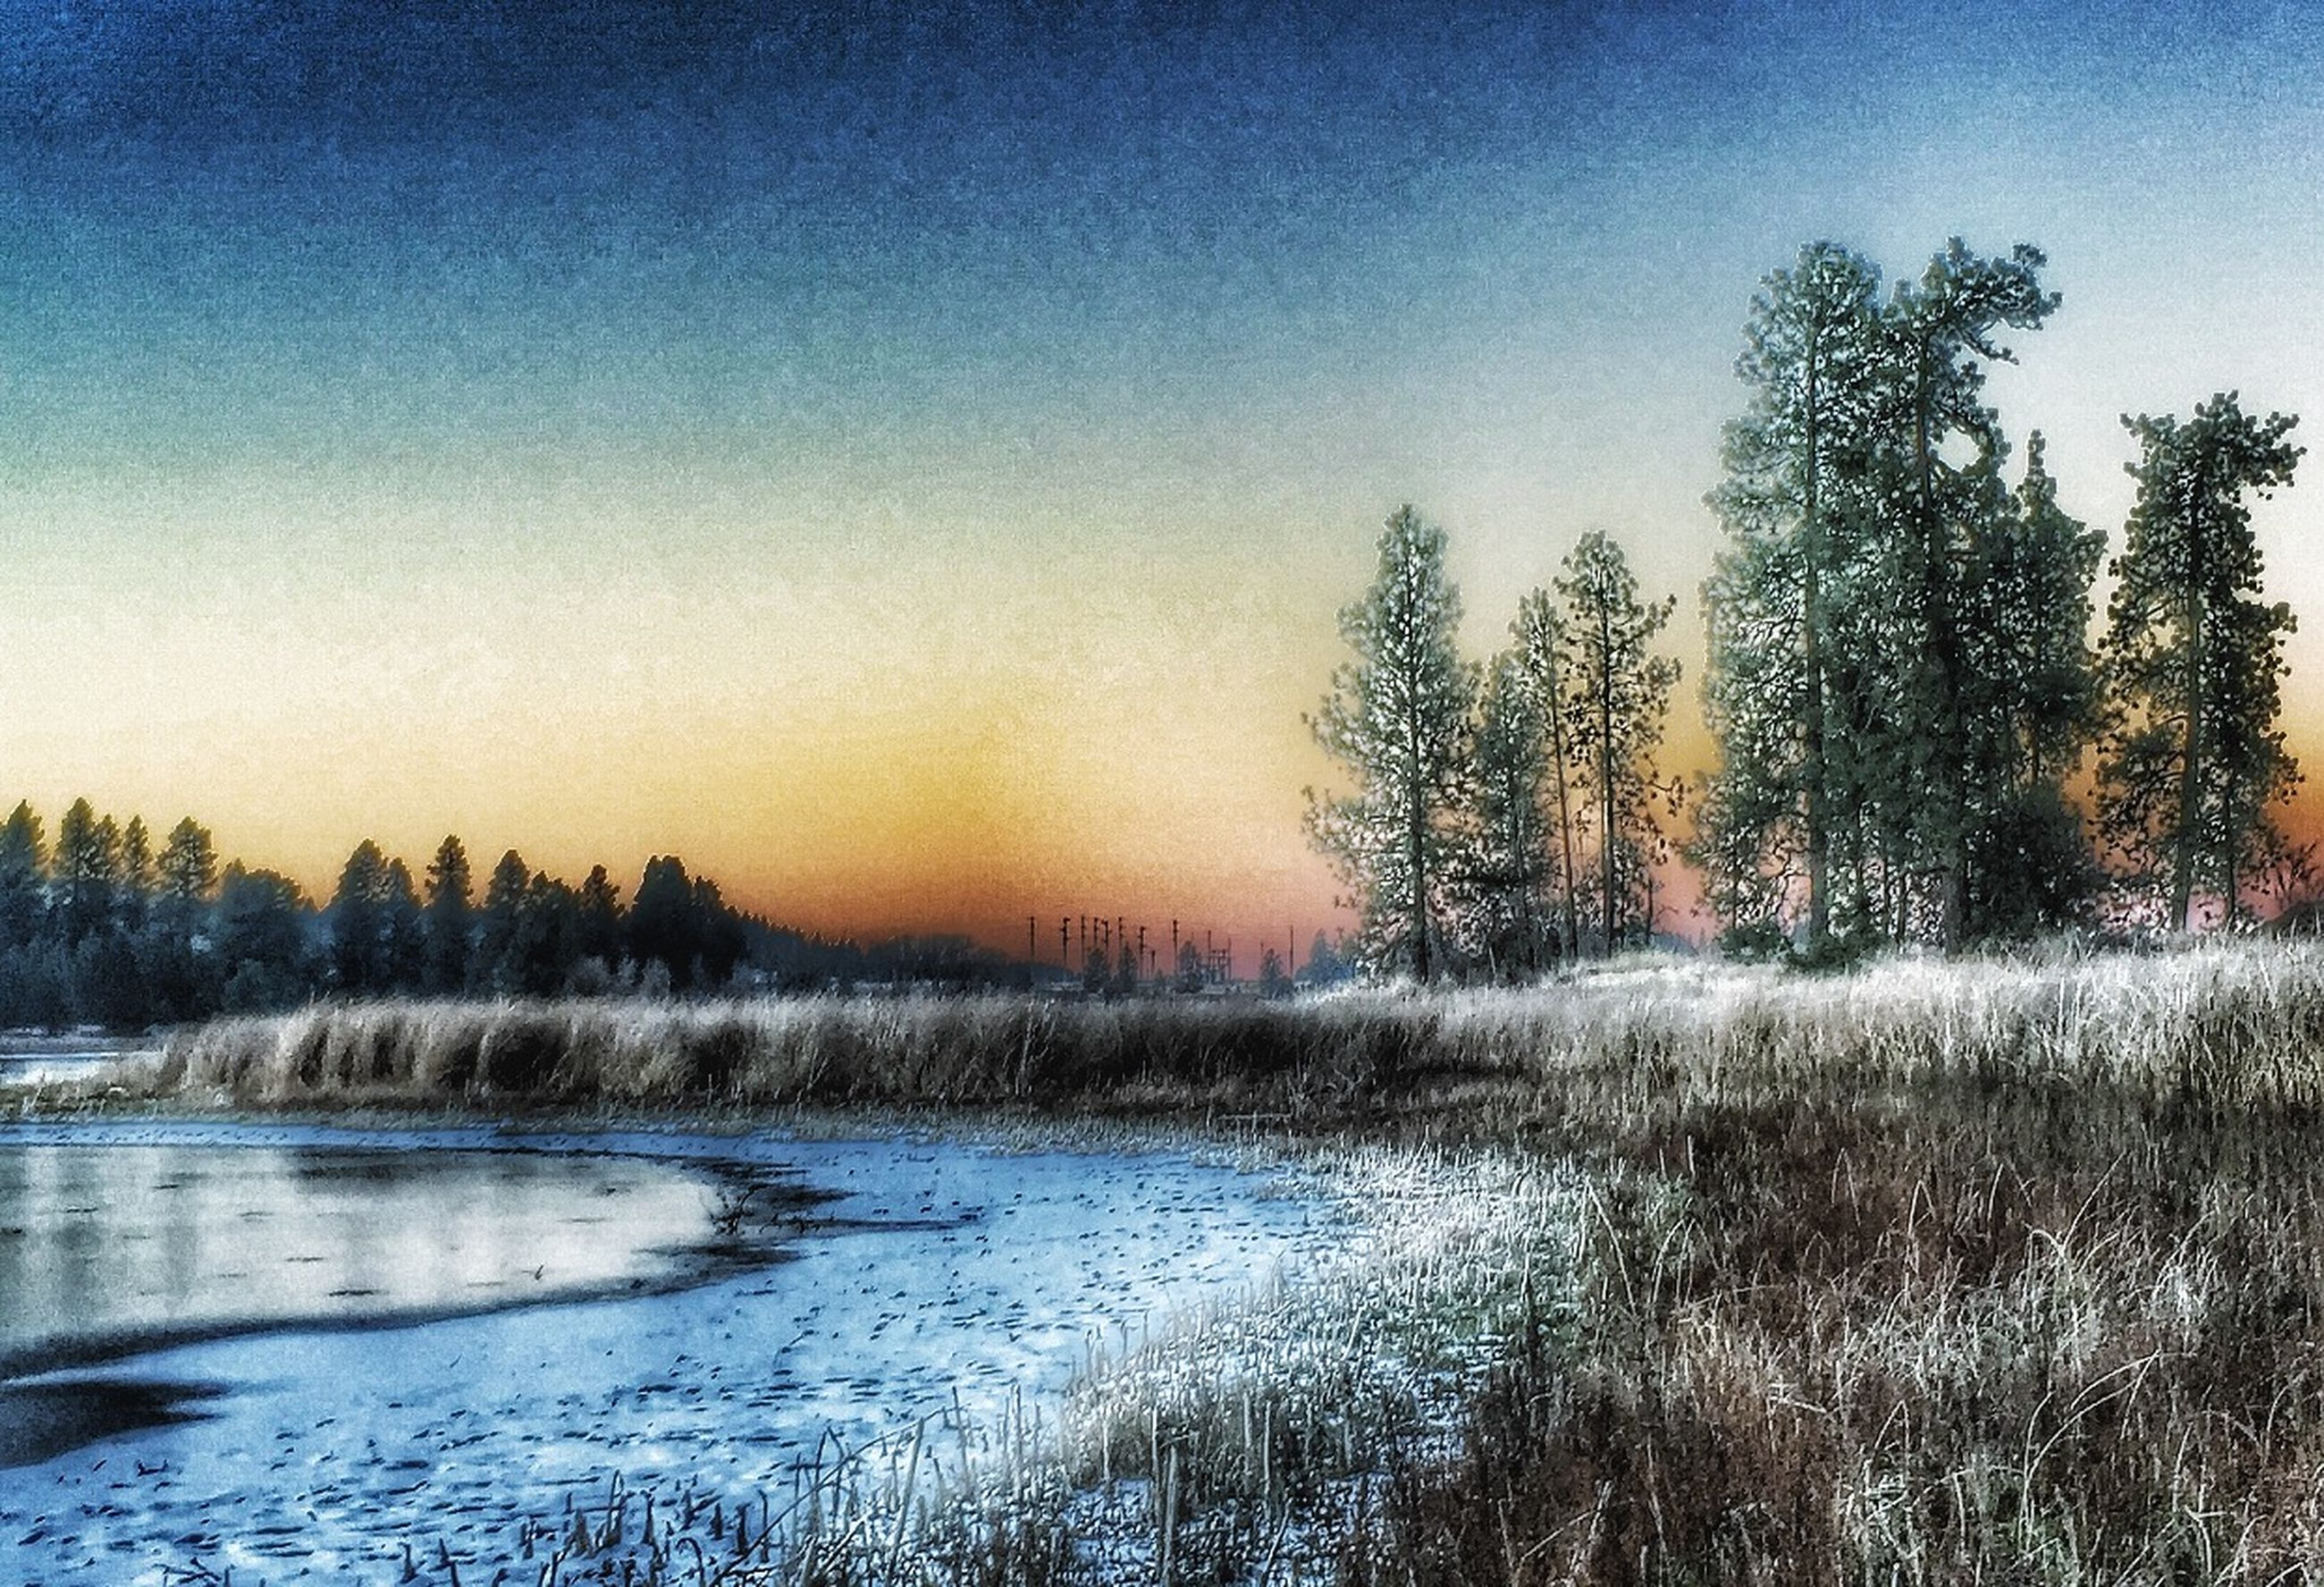 winter, cold temperature, snow, sunset, tranquil scene, tree, scenics, tranquility, beauty in nature, water, season, nature, clear sky, weather, frozen, sky, silhouette, bare tree, landscape, lake